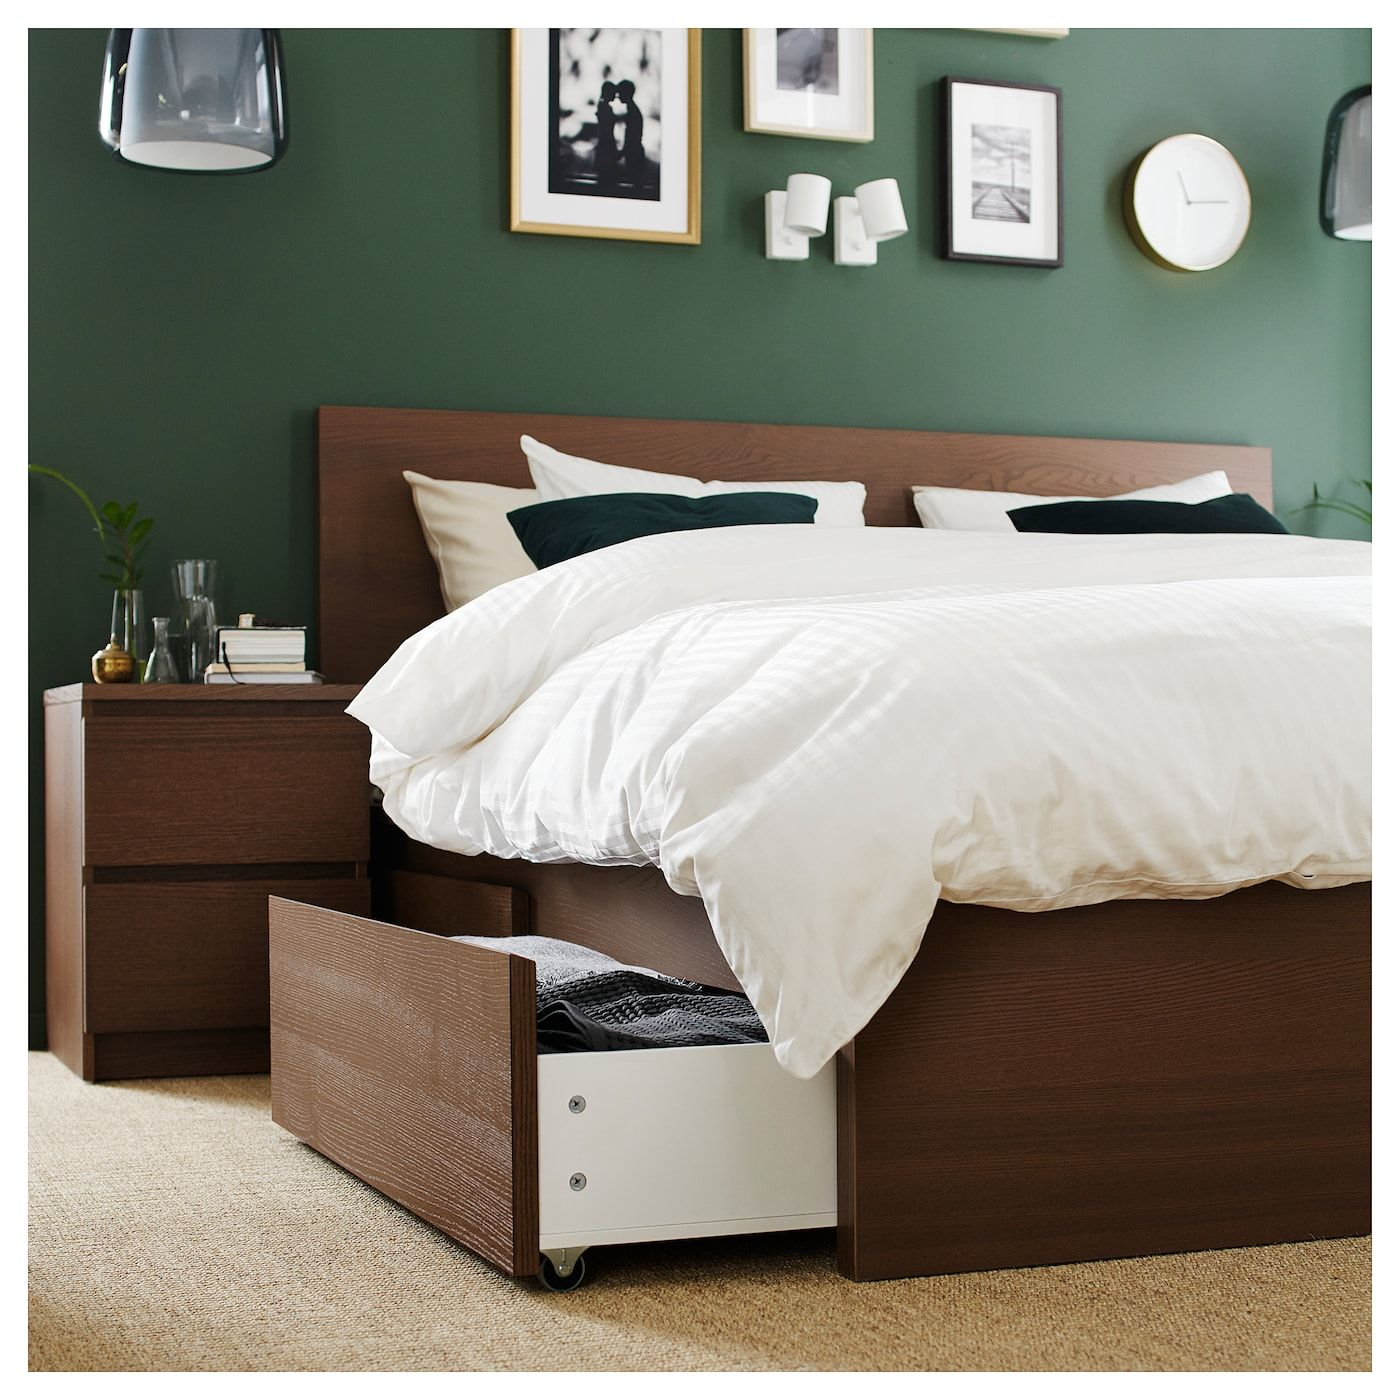 Ikea Malm High Bed Frame 4 Storage Boxes Brown Stained Ash